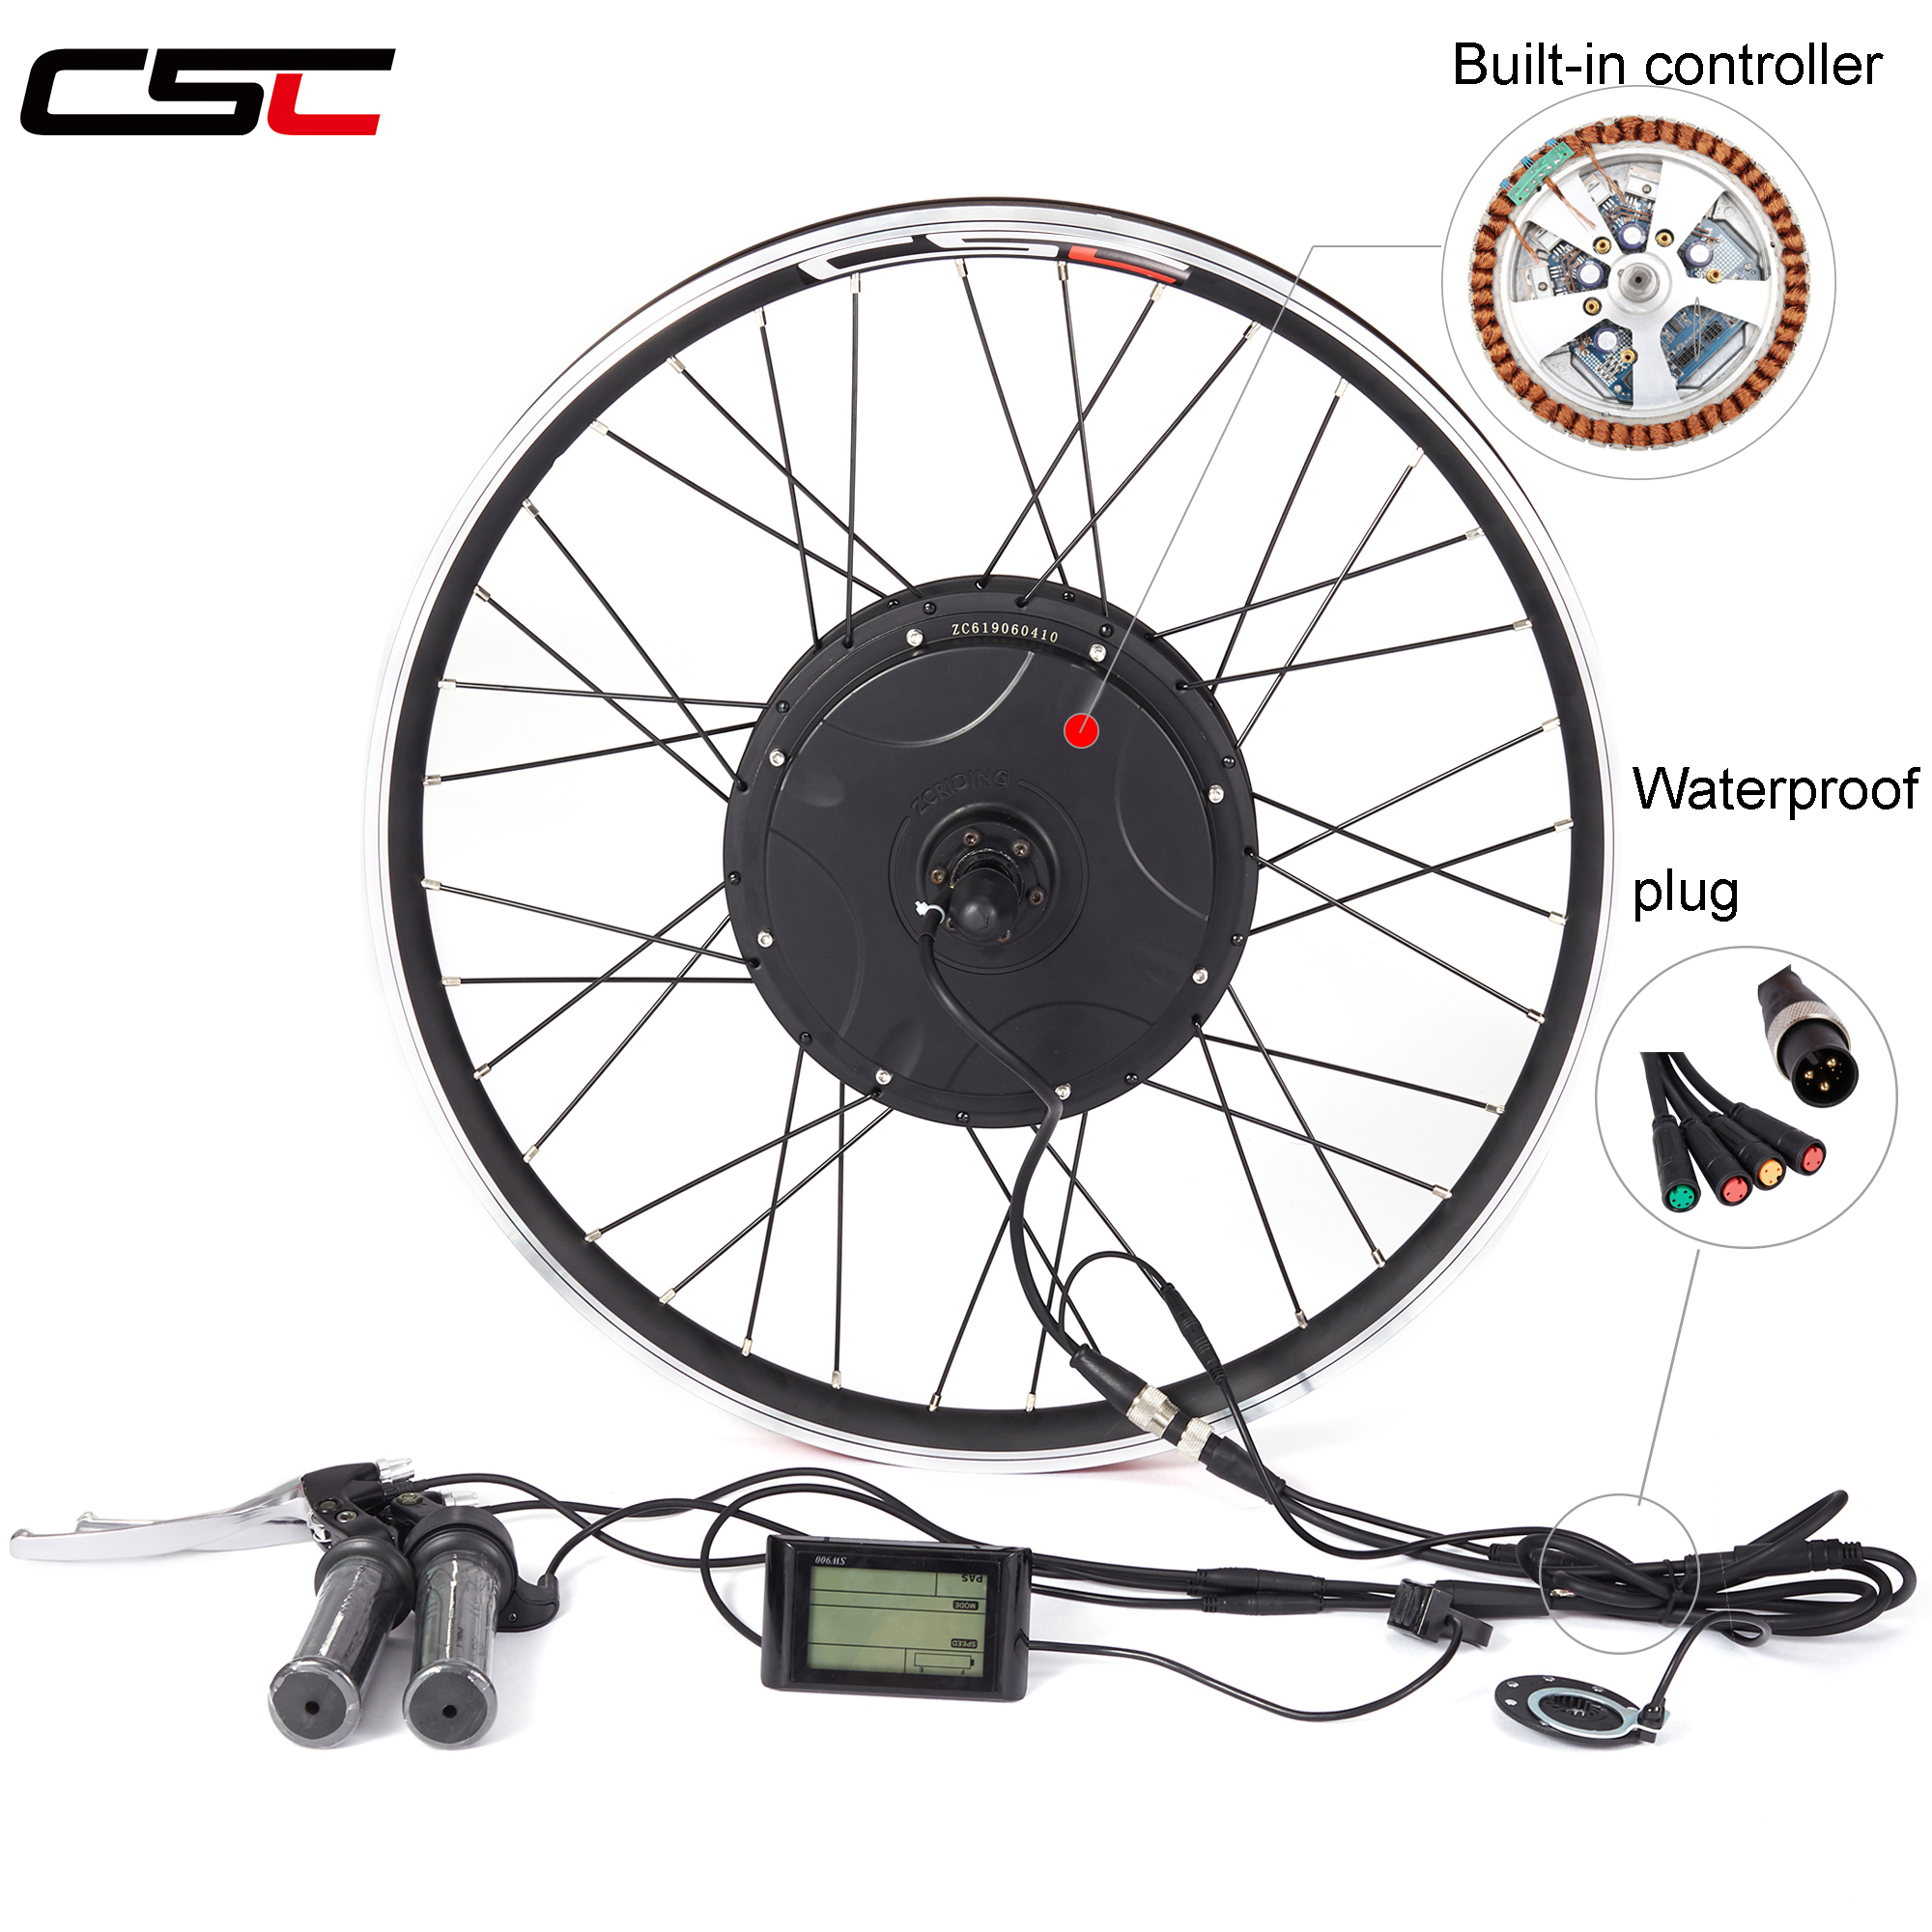 Electric Bike Conversion Kit Waterproof Built-in Controller Bicycle Motor Wheel 48V 1000W 1500W For 20-29inch 700C EBike